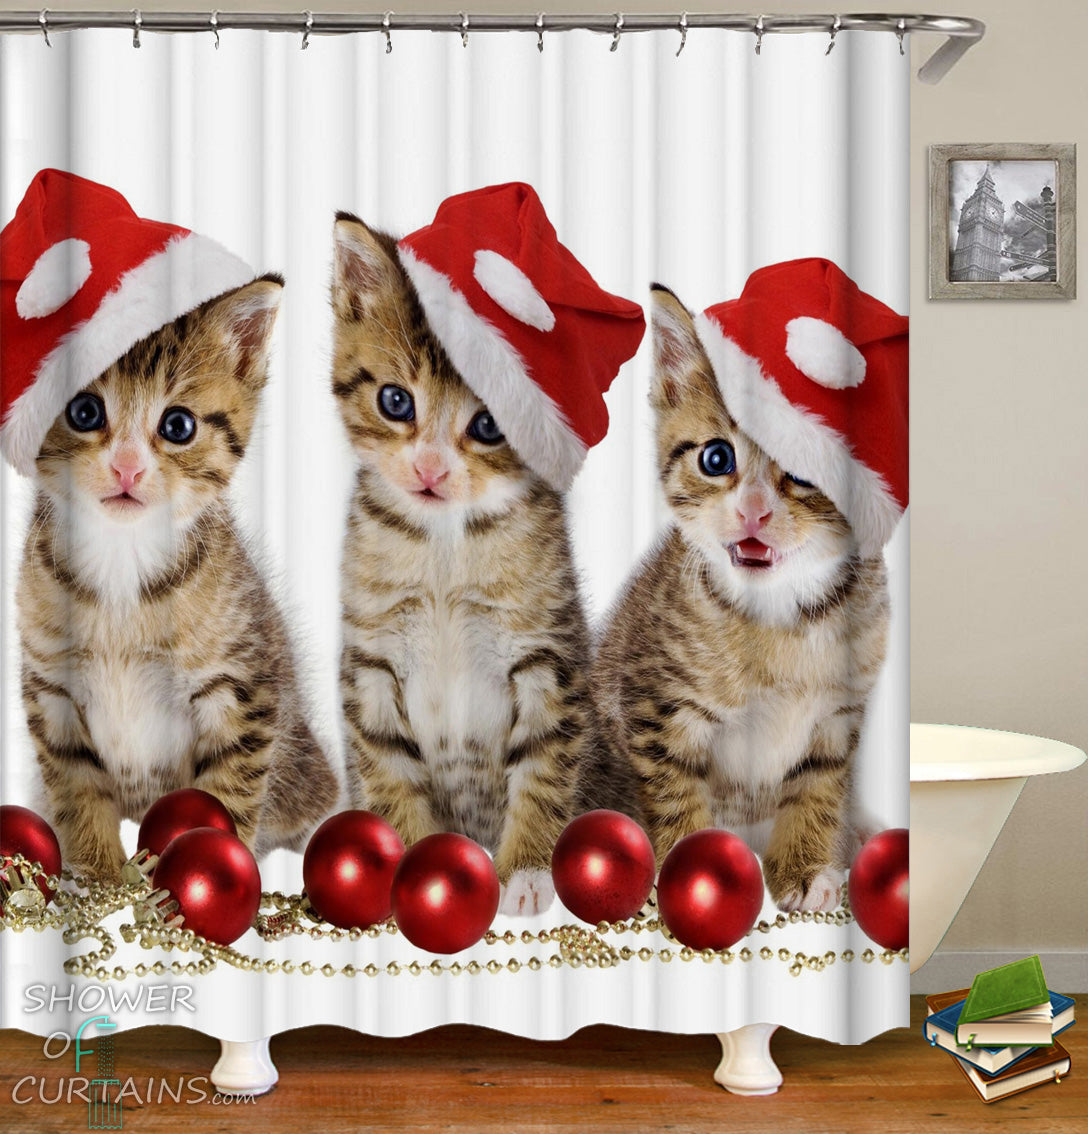 Christmas Shower Curtains Of Santas Kittens Curtain